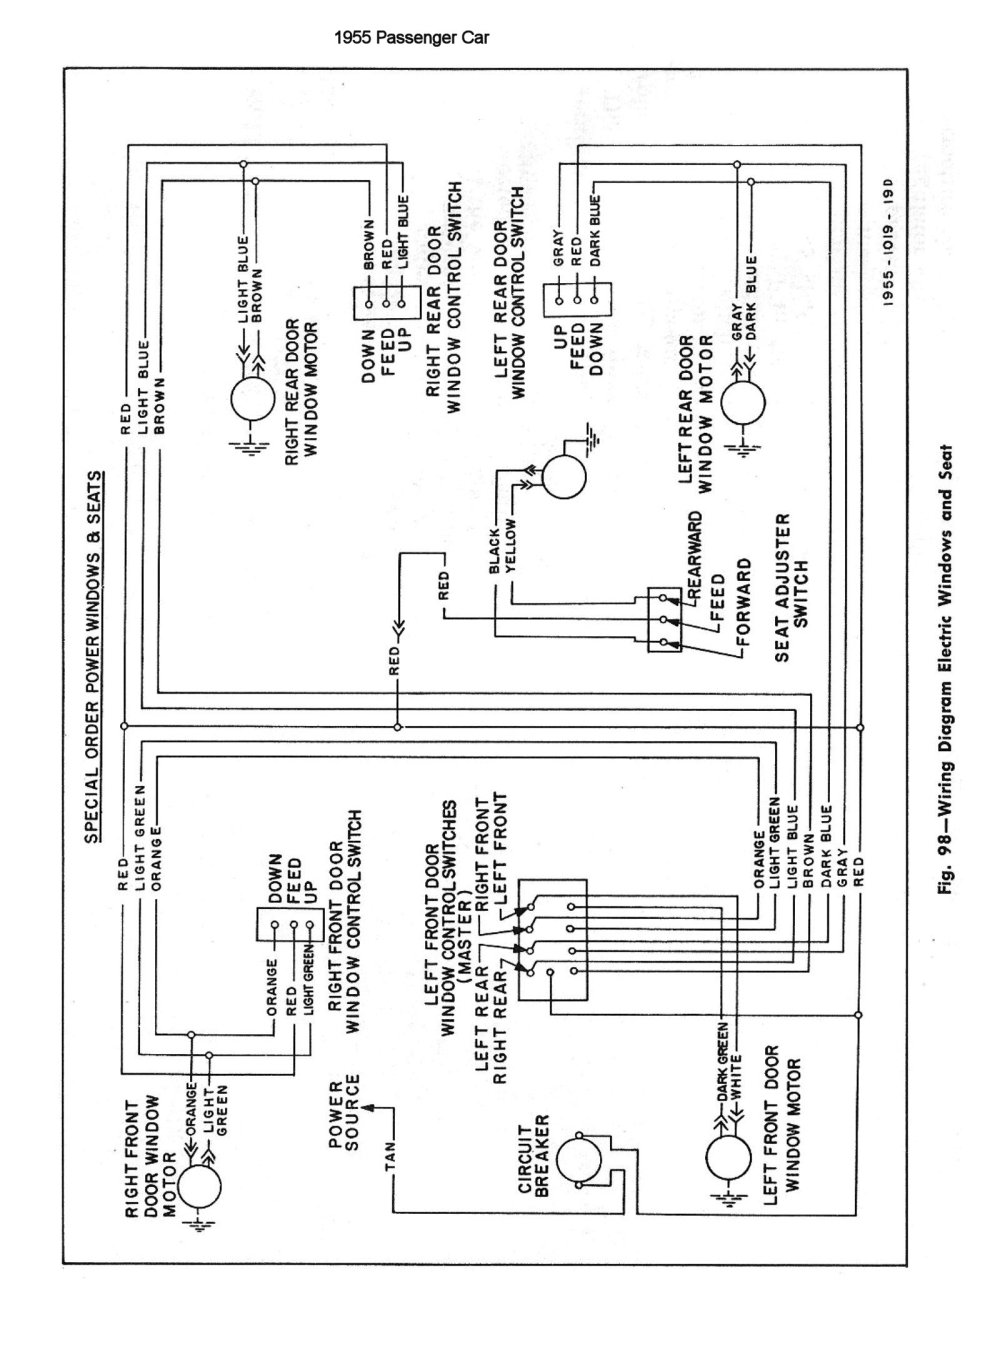 medium resolution of wire diagram for 1969 international pickup wiring library1955 truck wiring diagrams 1955 electric windows